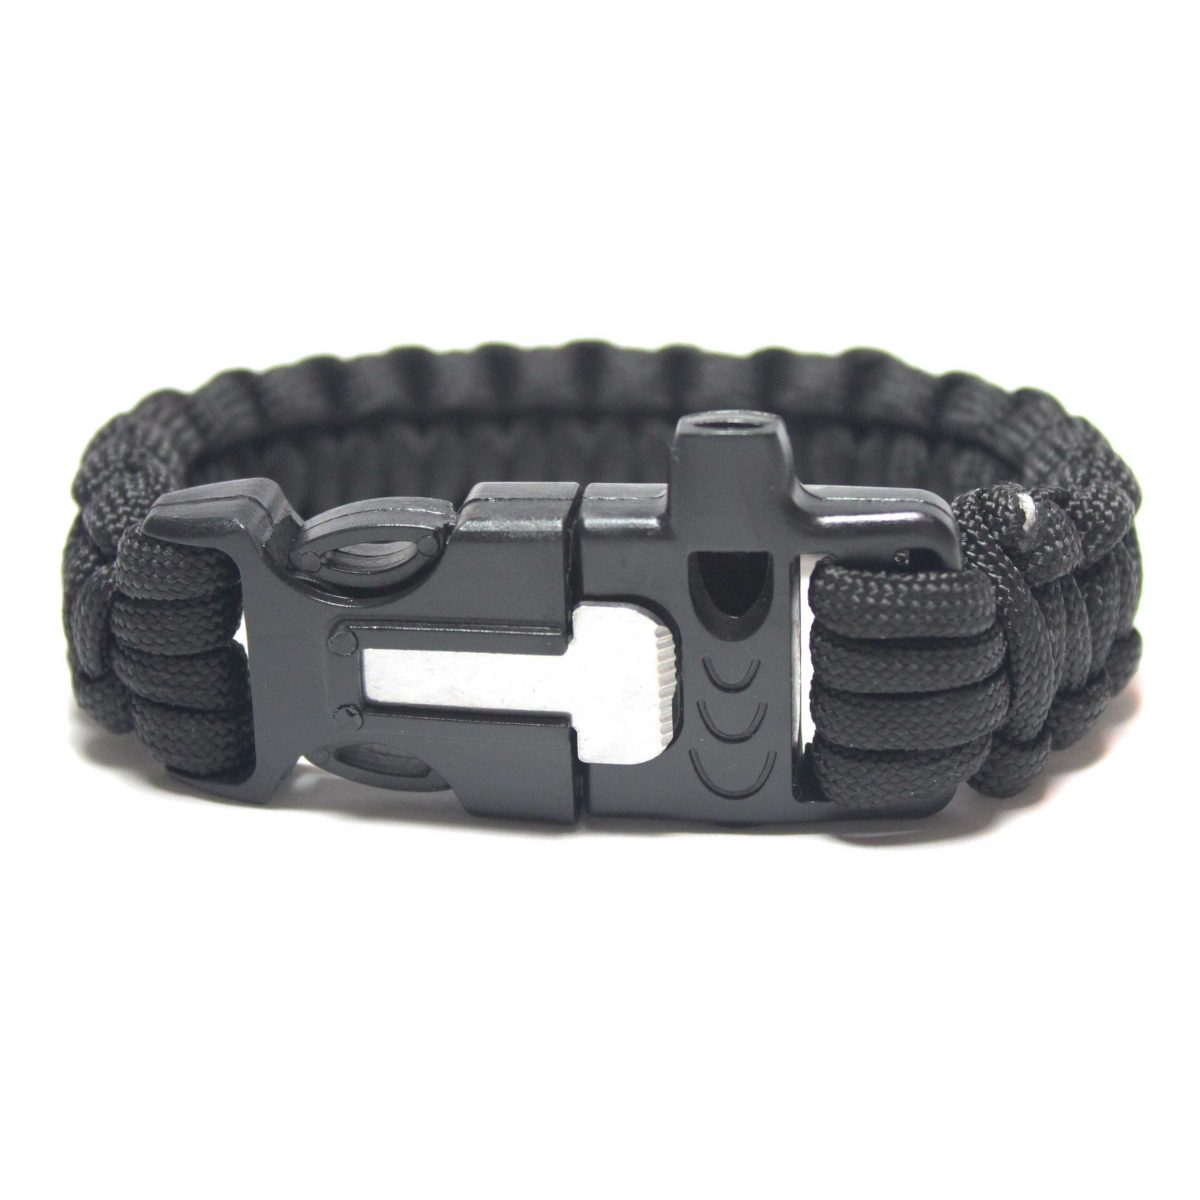 Paracord Survival Bracelet with Fire Starter and Whistle Built In - 10.5 Inch Length-0